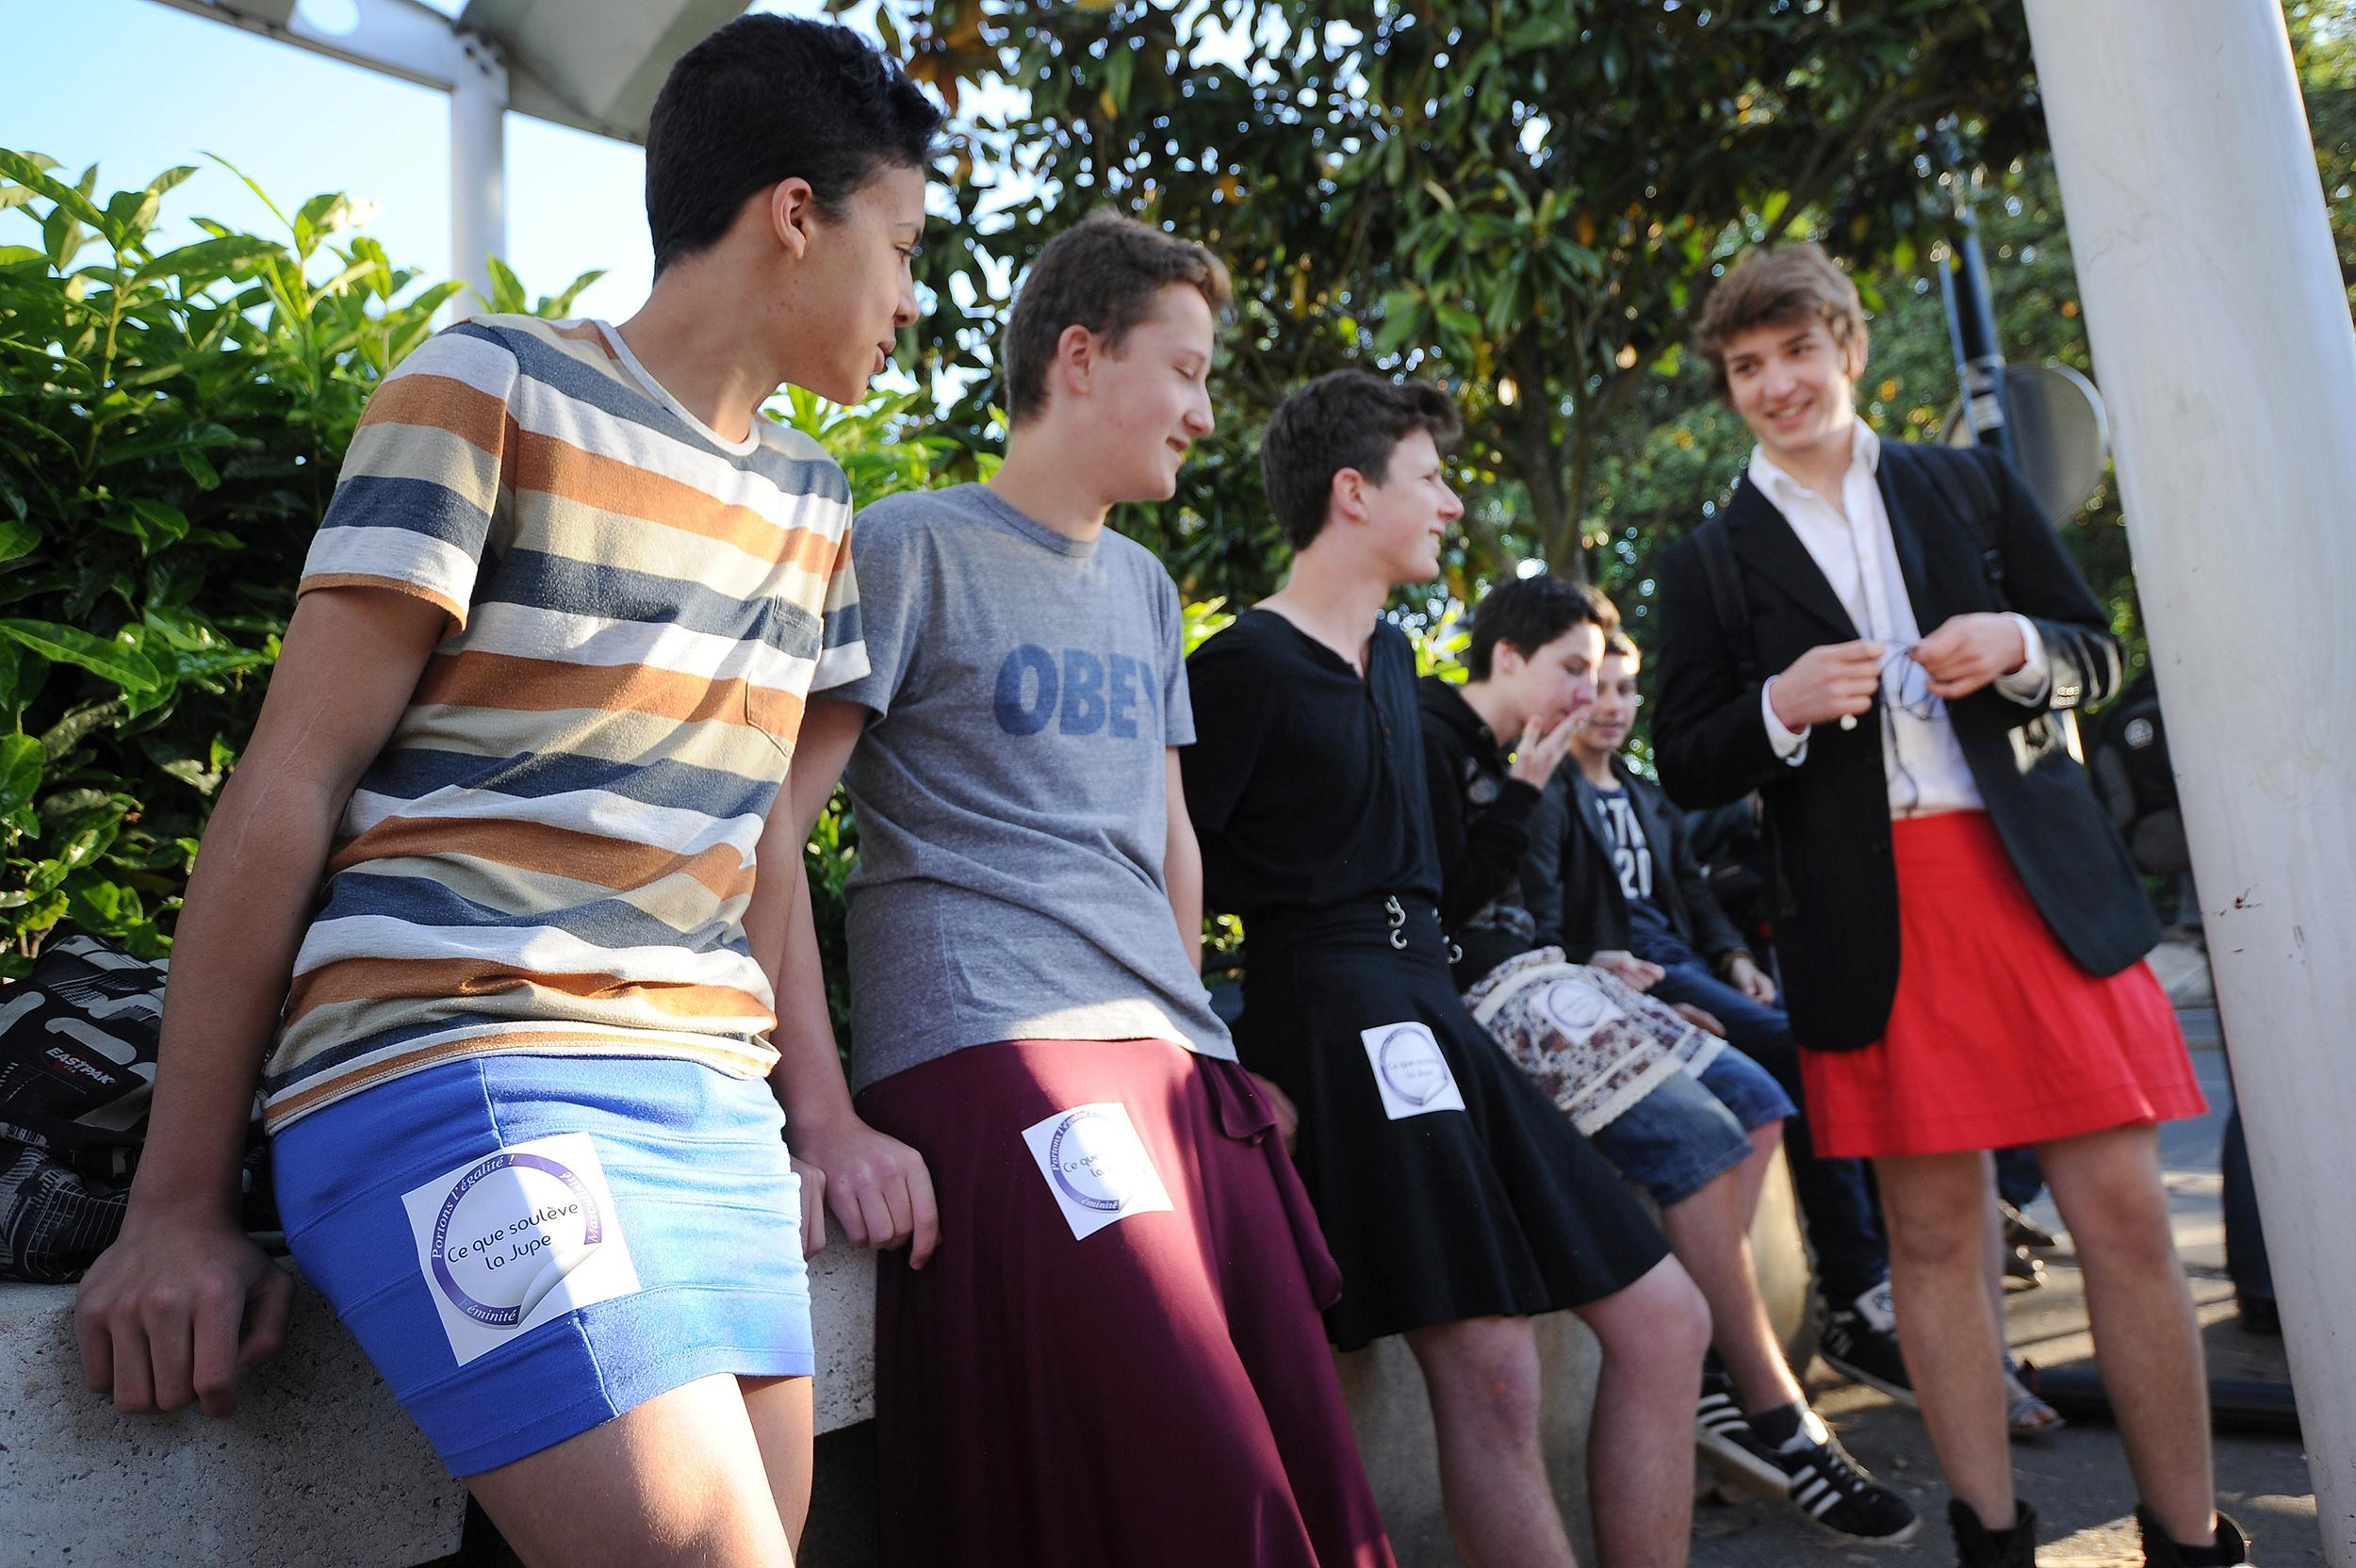 French Teens Wear Skirts to Fight Against Sexism